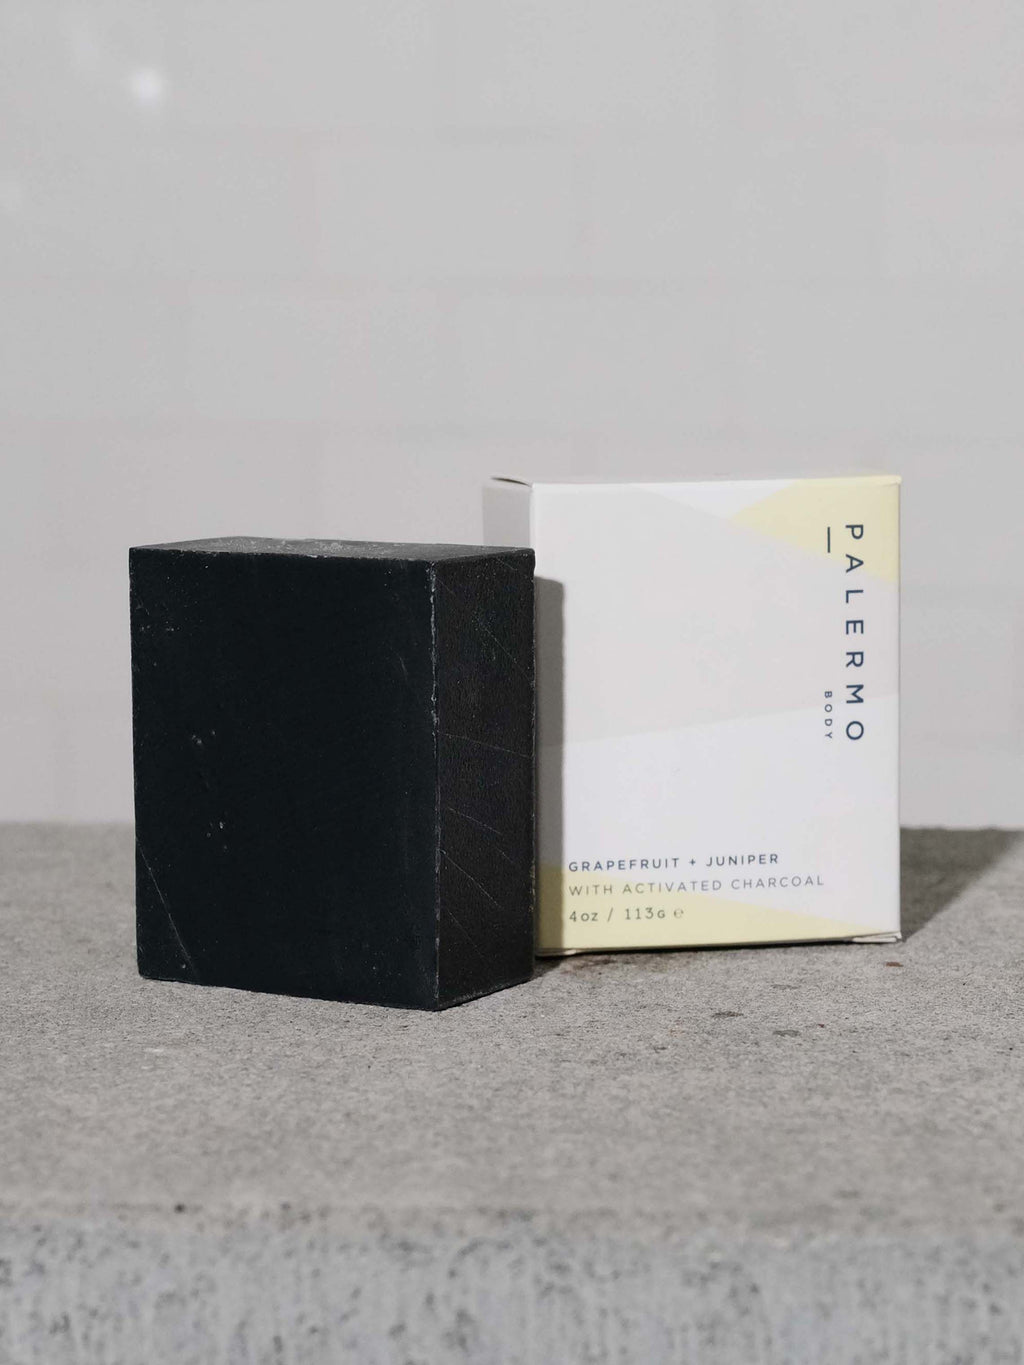 PALERMO BODY GRAPEFRUIT + JUNIPER WITH ACTIVATED CHARCOAL SOAP